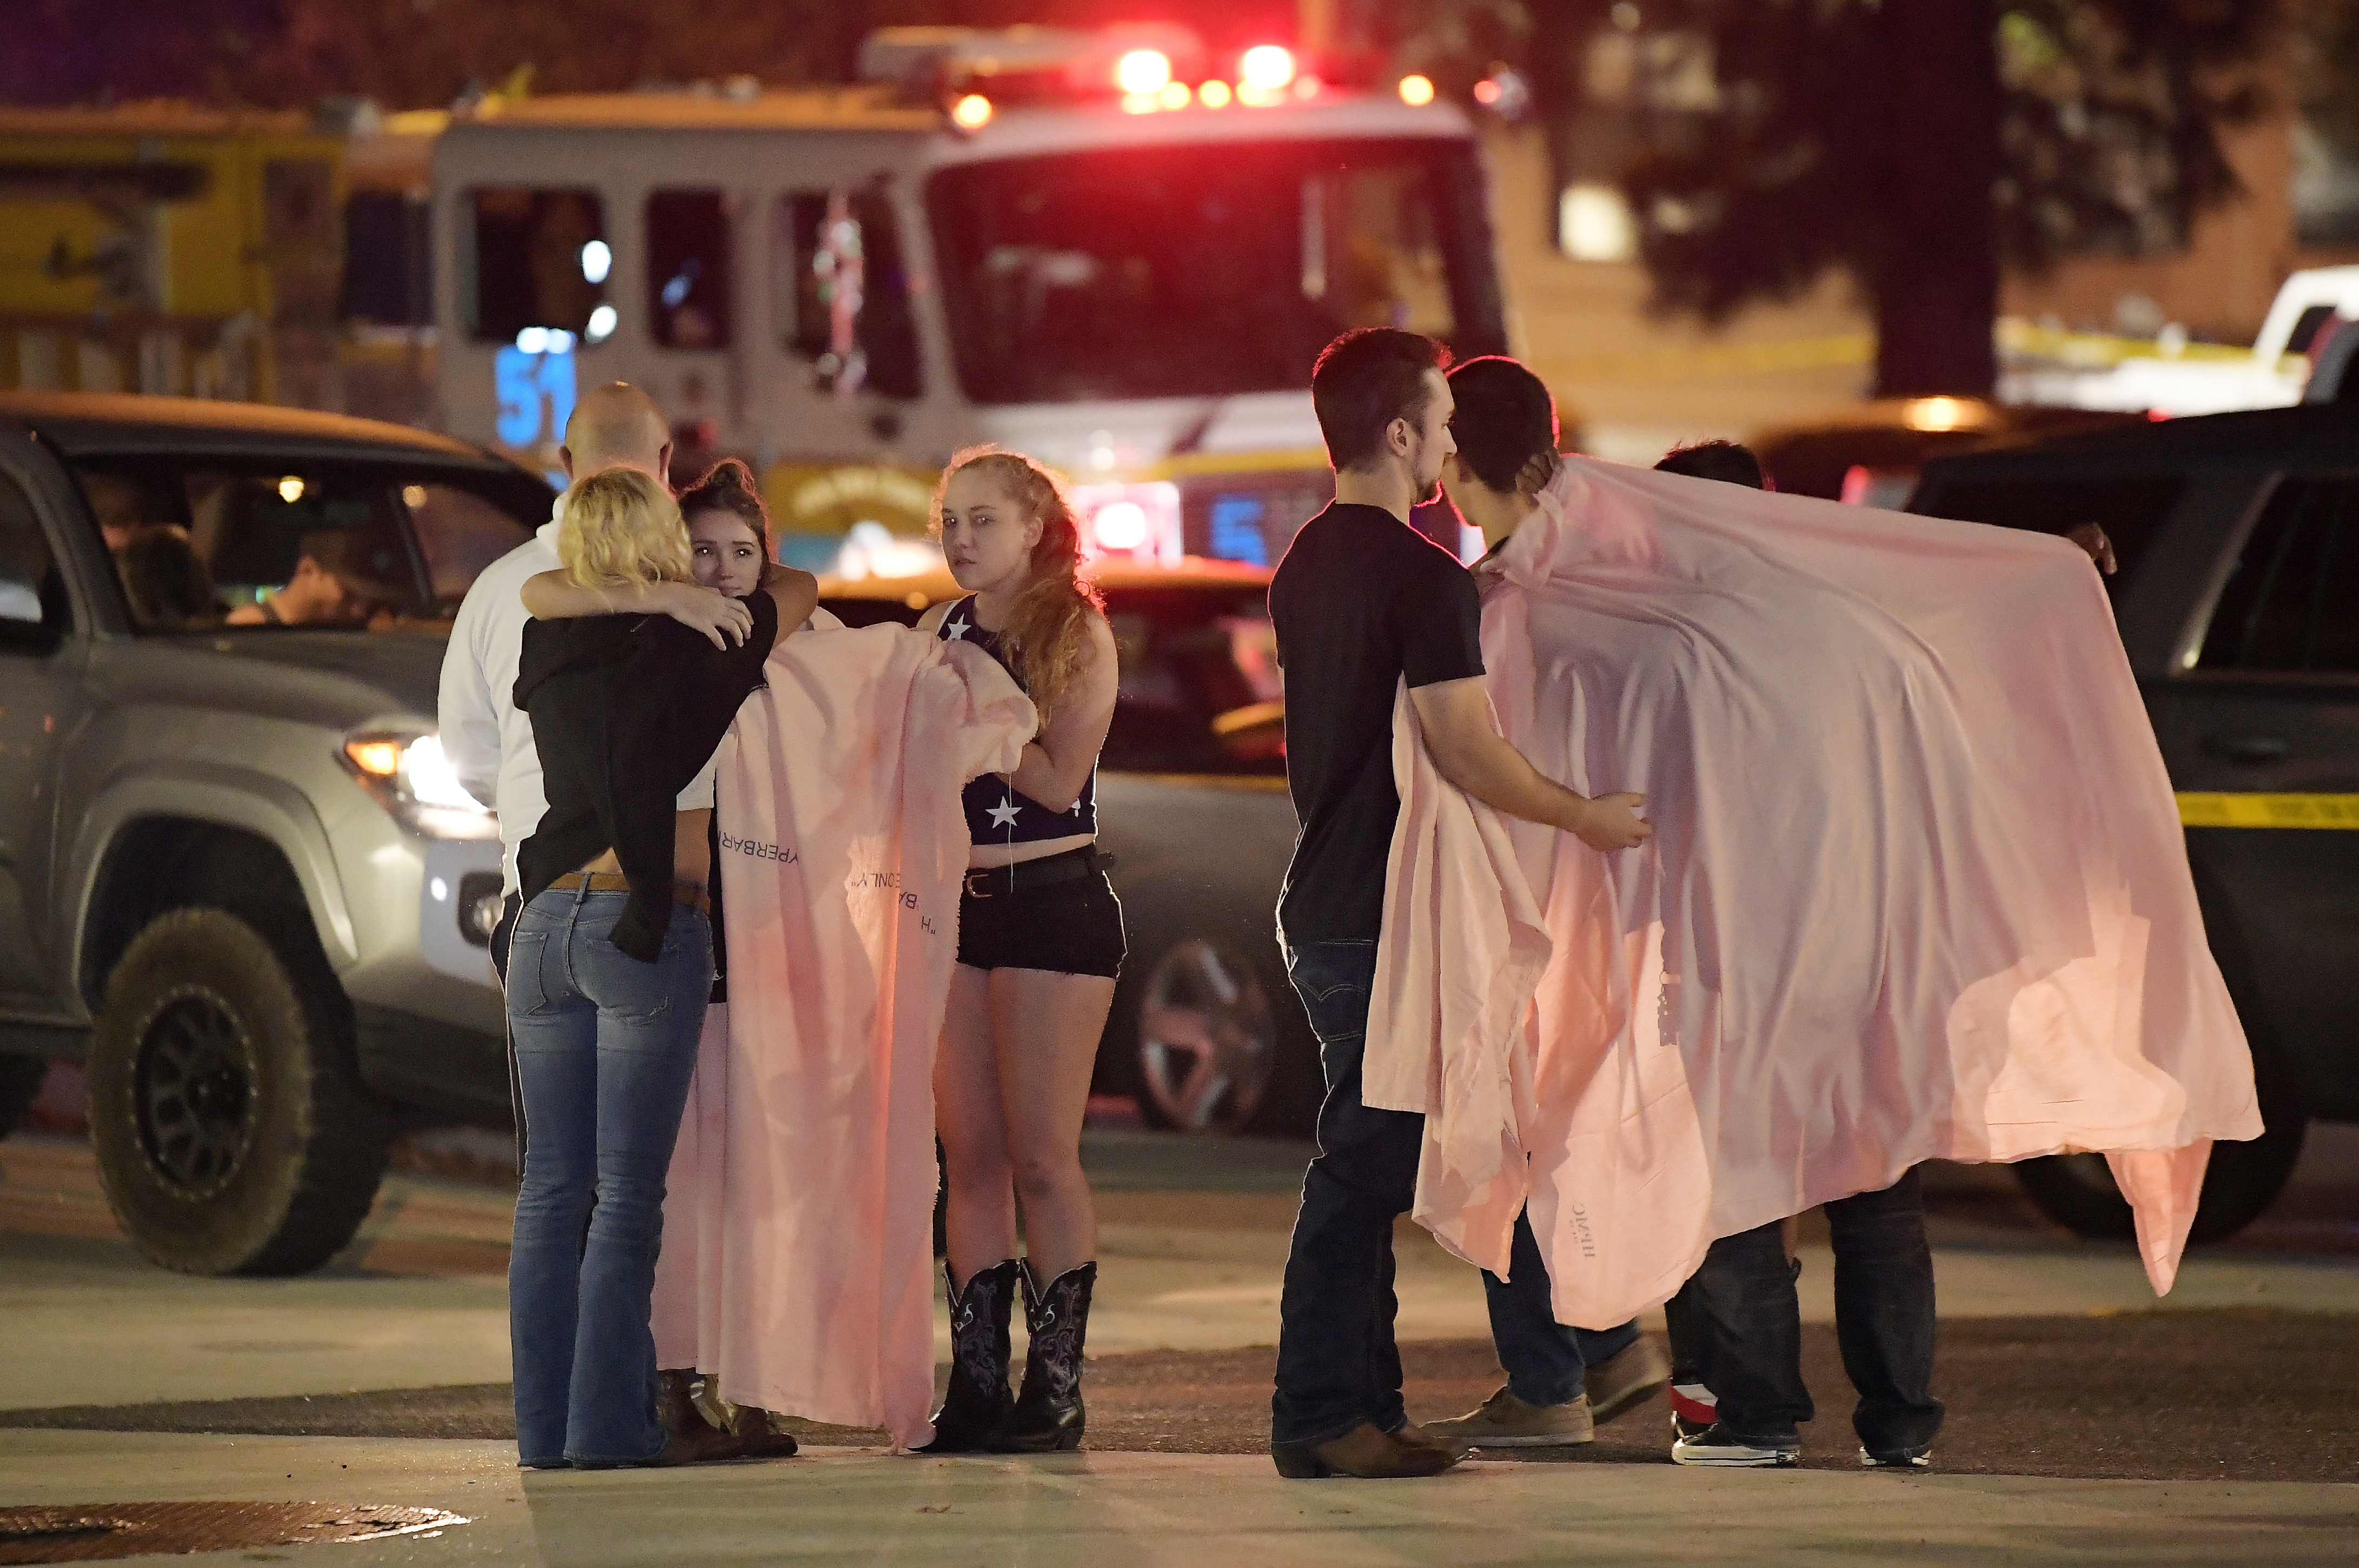 People comfort each other as they stand near the scene in Thousand Oaks, Calif., where a gunman opened fire Wednesday inside a country dance bar crowded with hundreds of people Nov. 8, 2018.